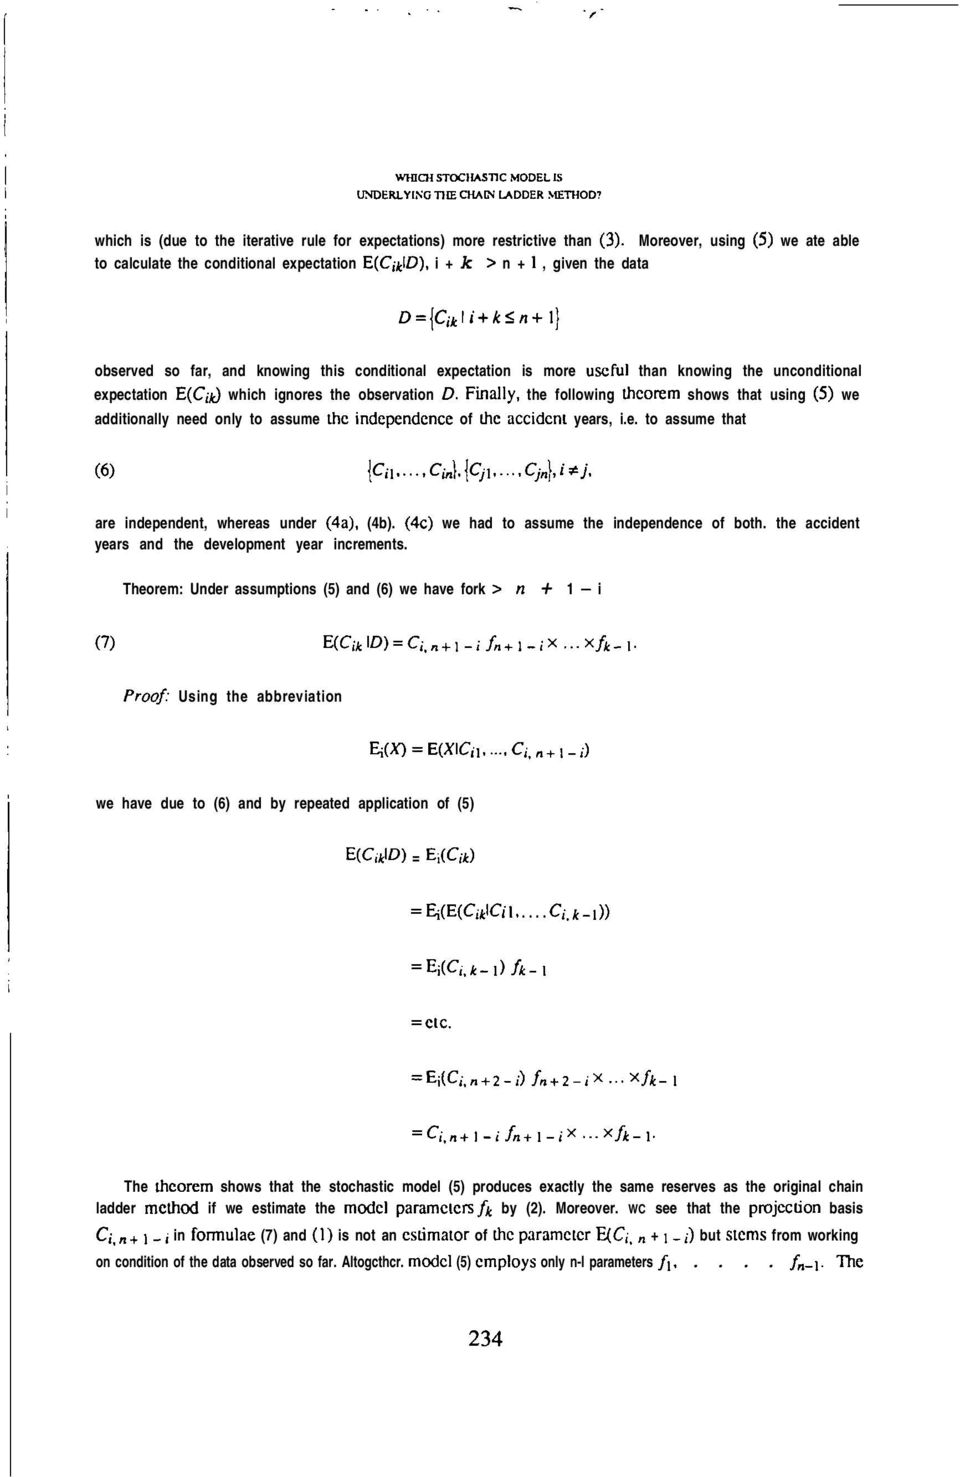 the unconditional expectation E(Cik) which ignores the observation D. Finally, the following theorem shows that using (5) we additionally need only to assume the independence of the accident years, i.